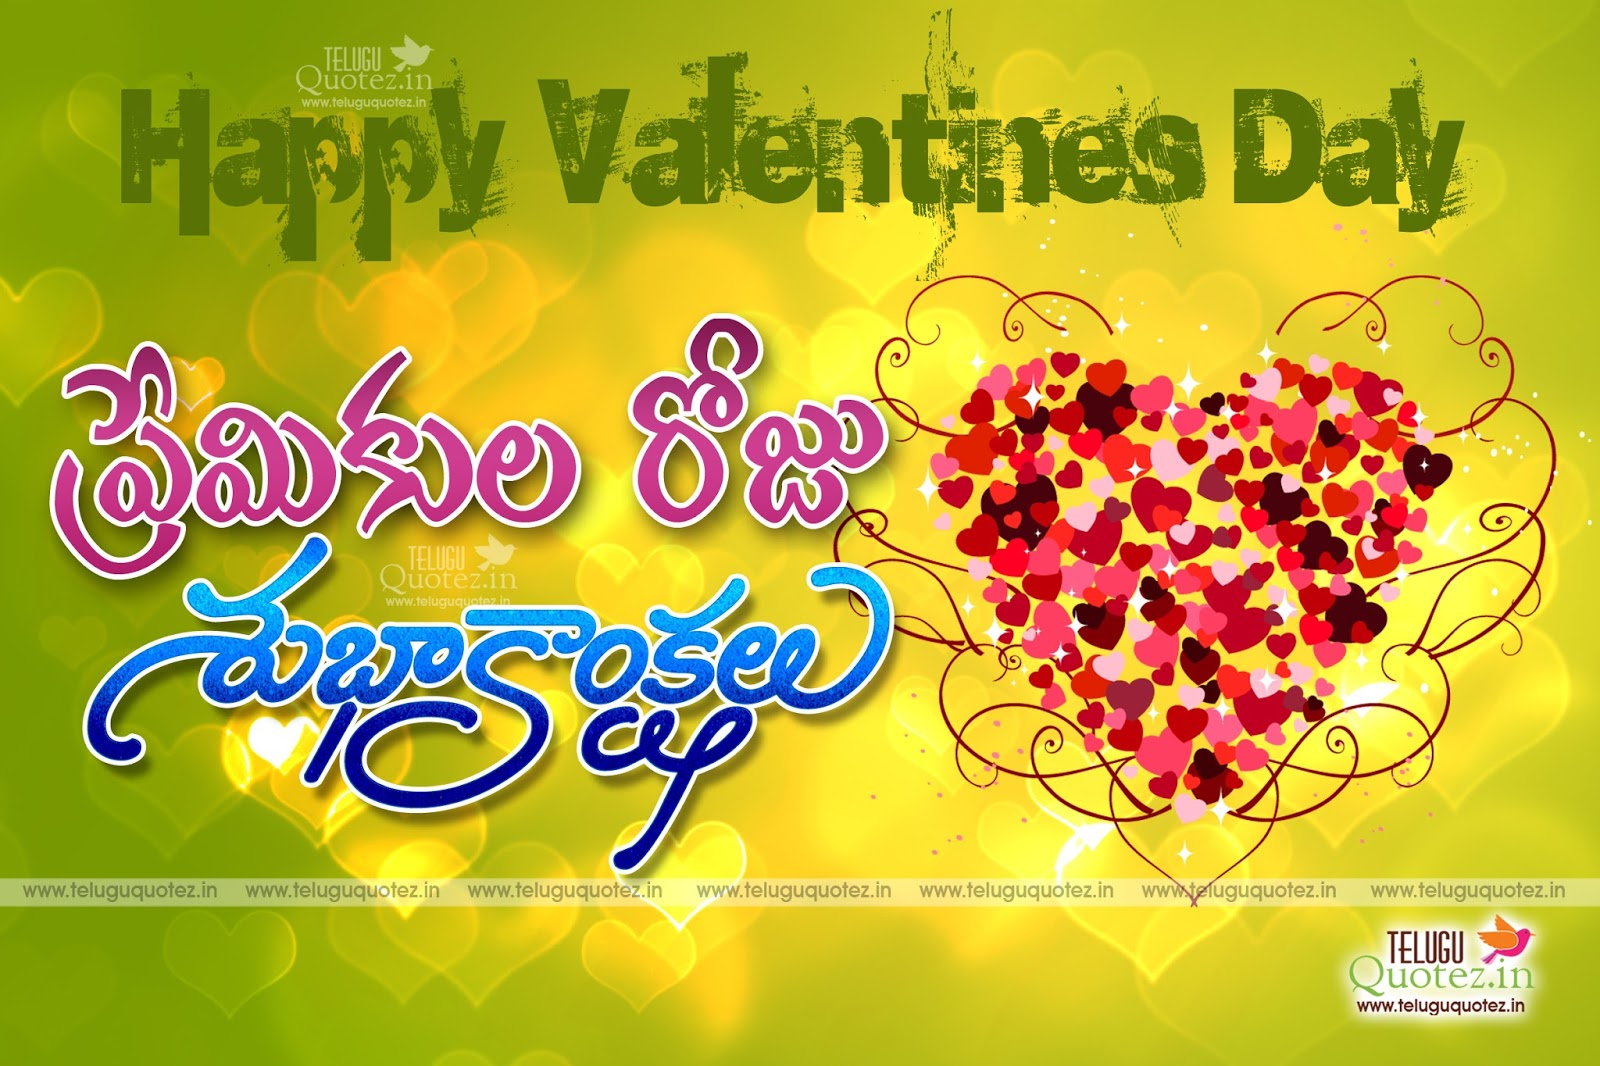 Valentines Day Love Greetings Online Free Downloads Teluguquotez